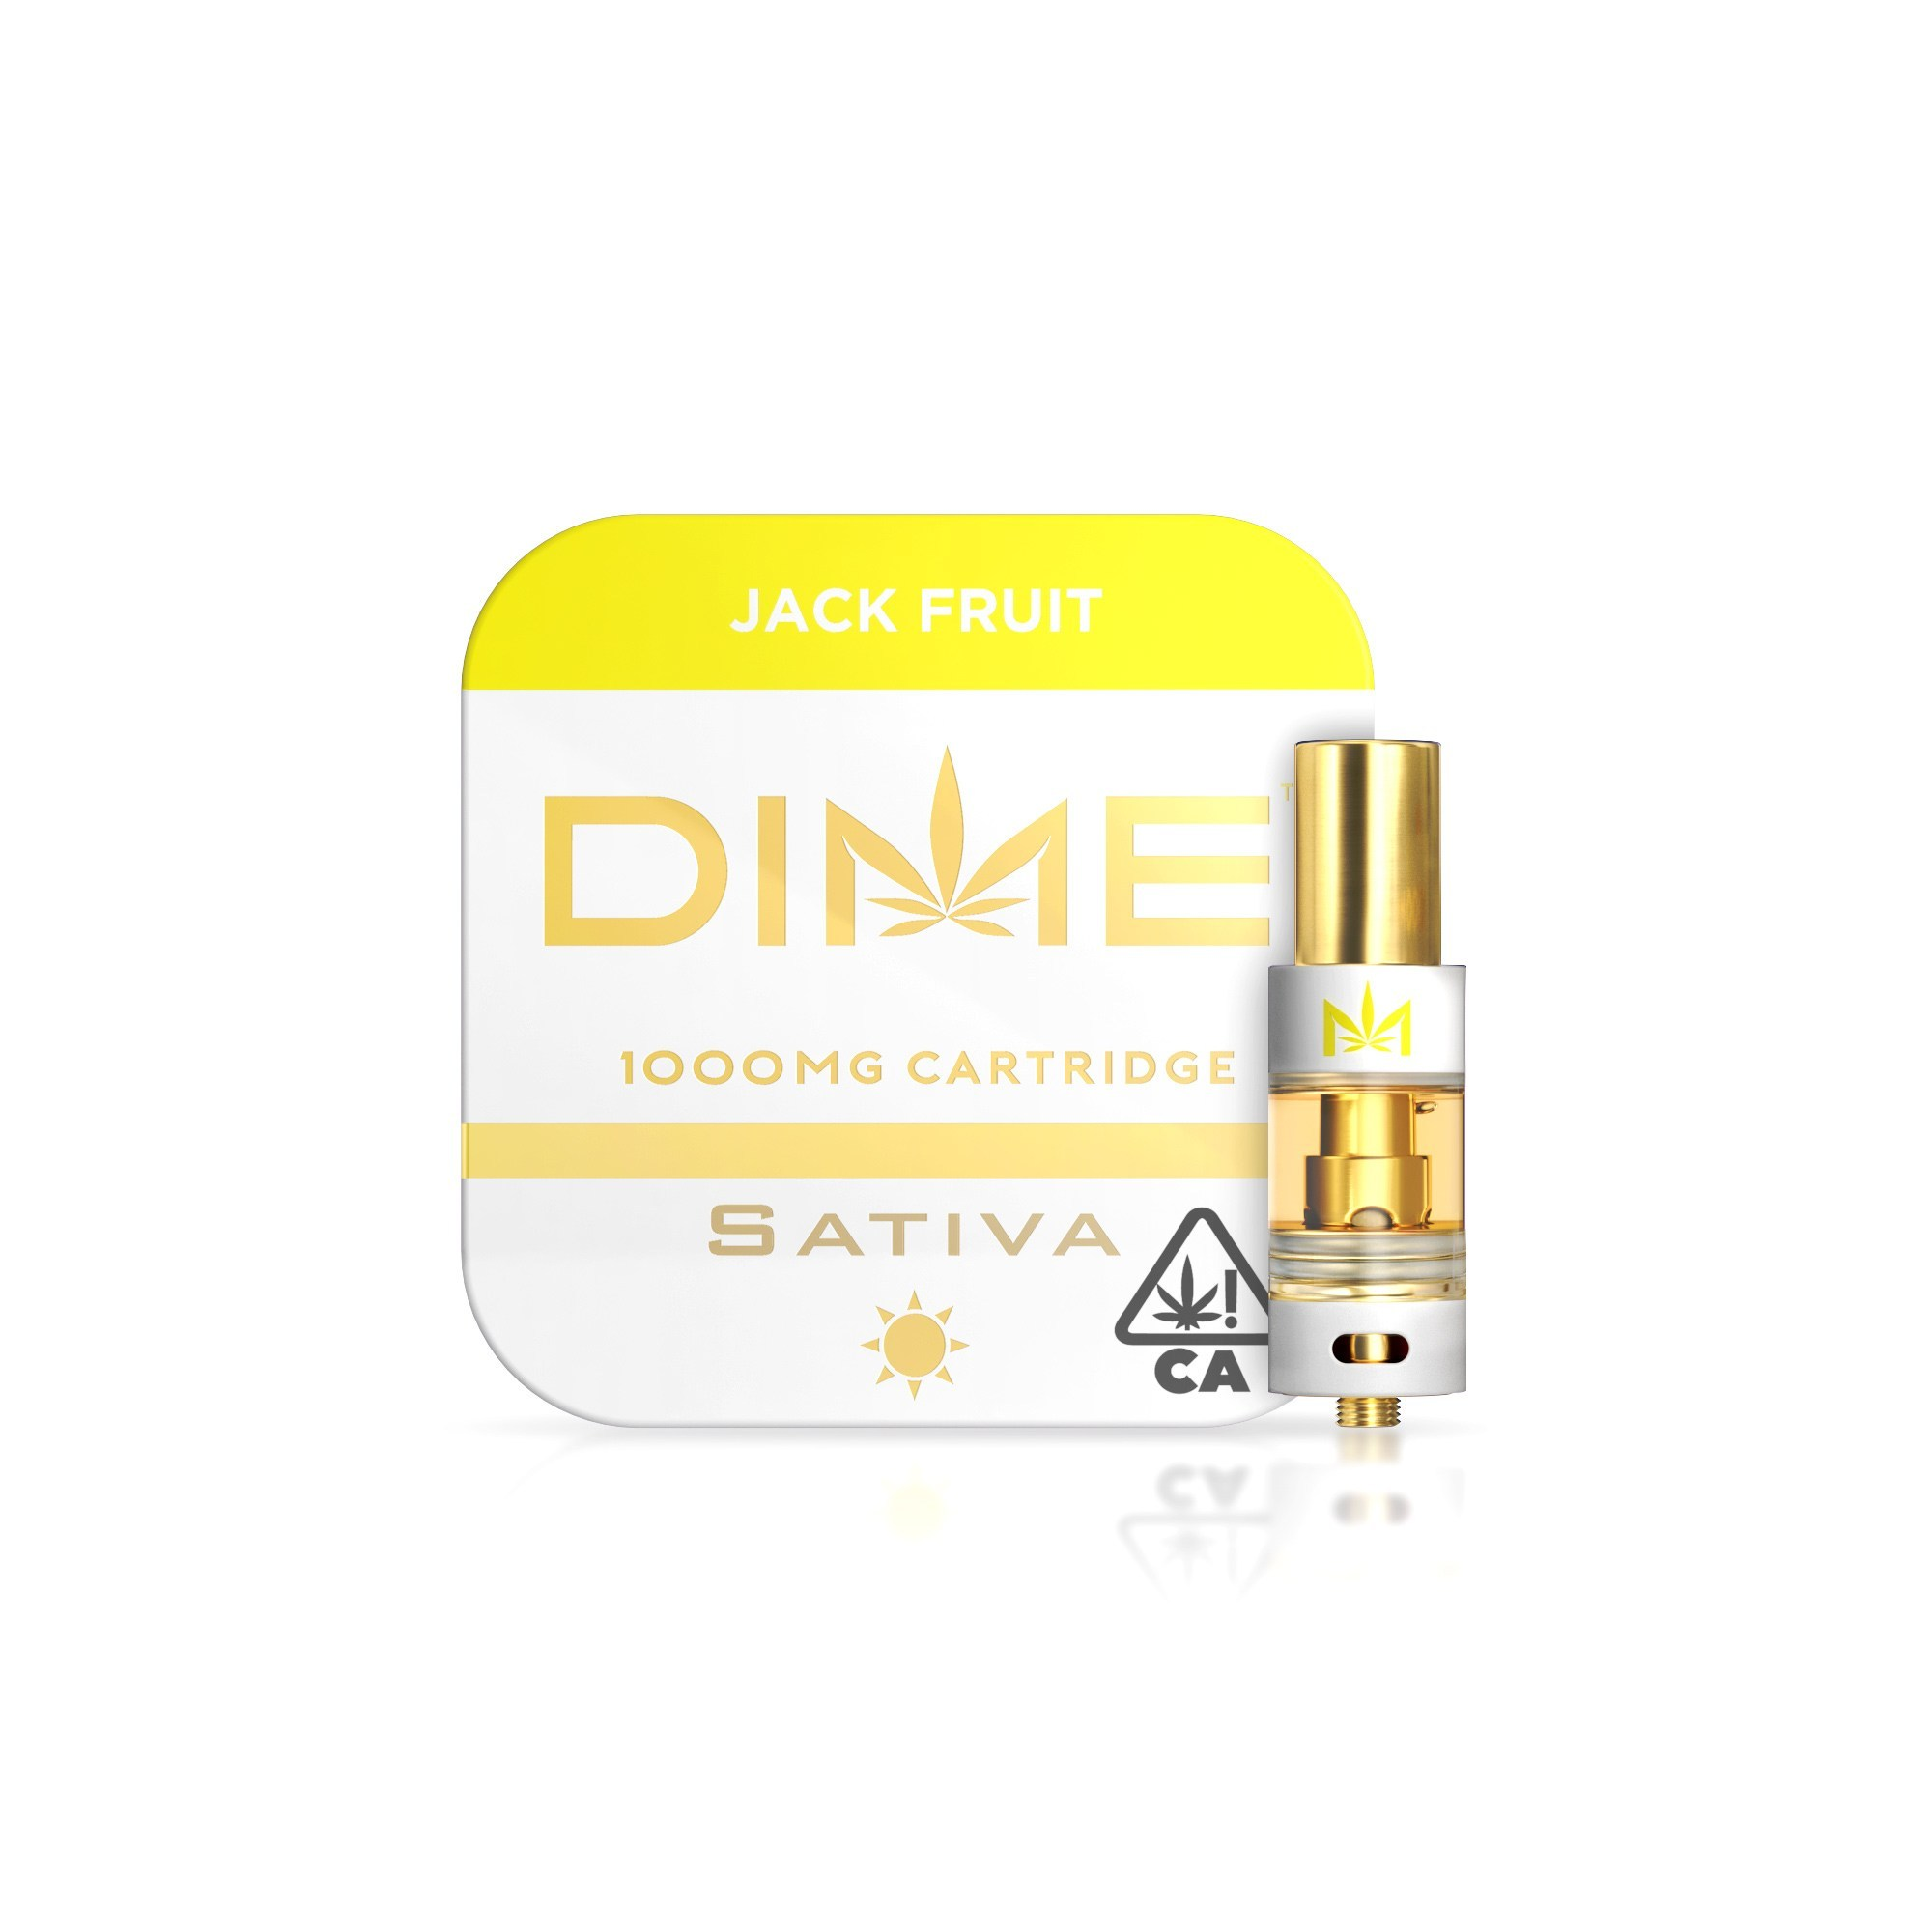 DIME 1000mg Cartridge – Jack Fruit